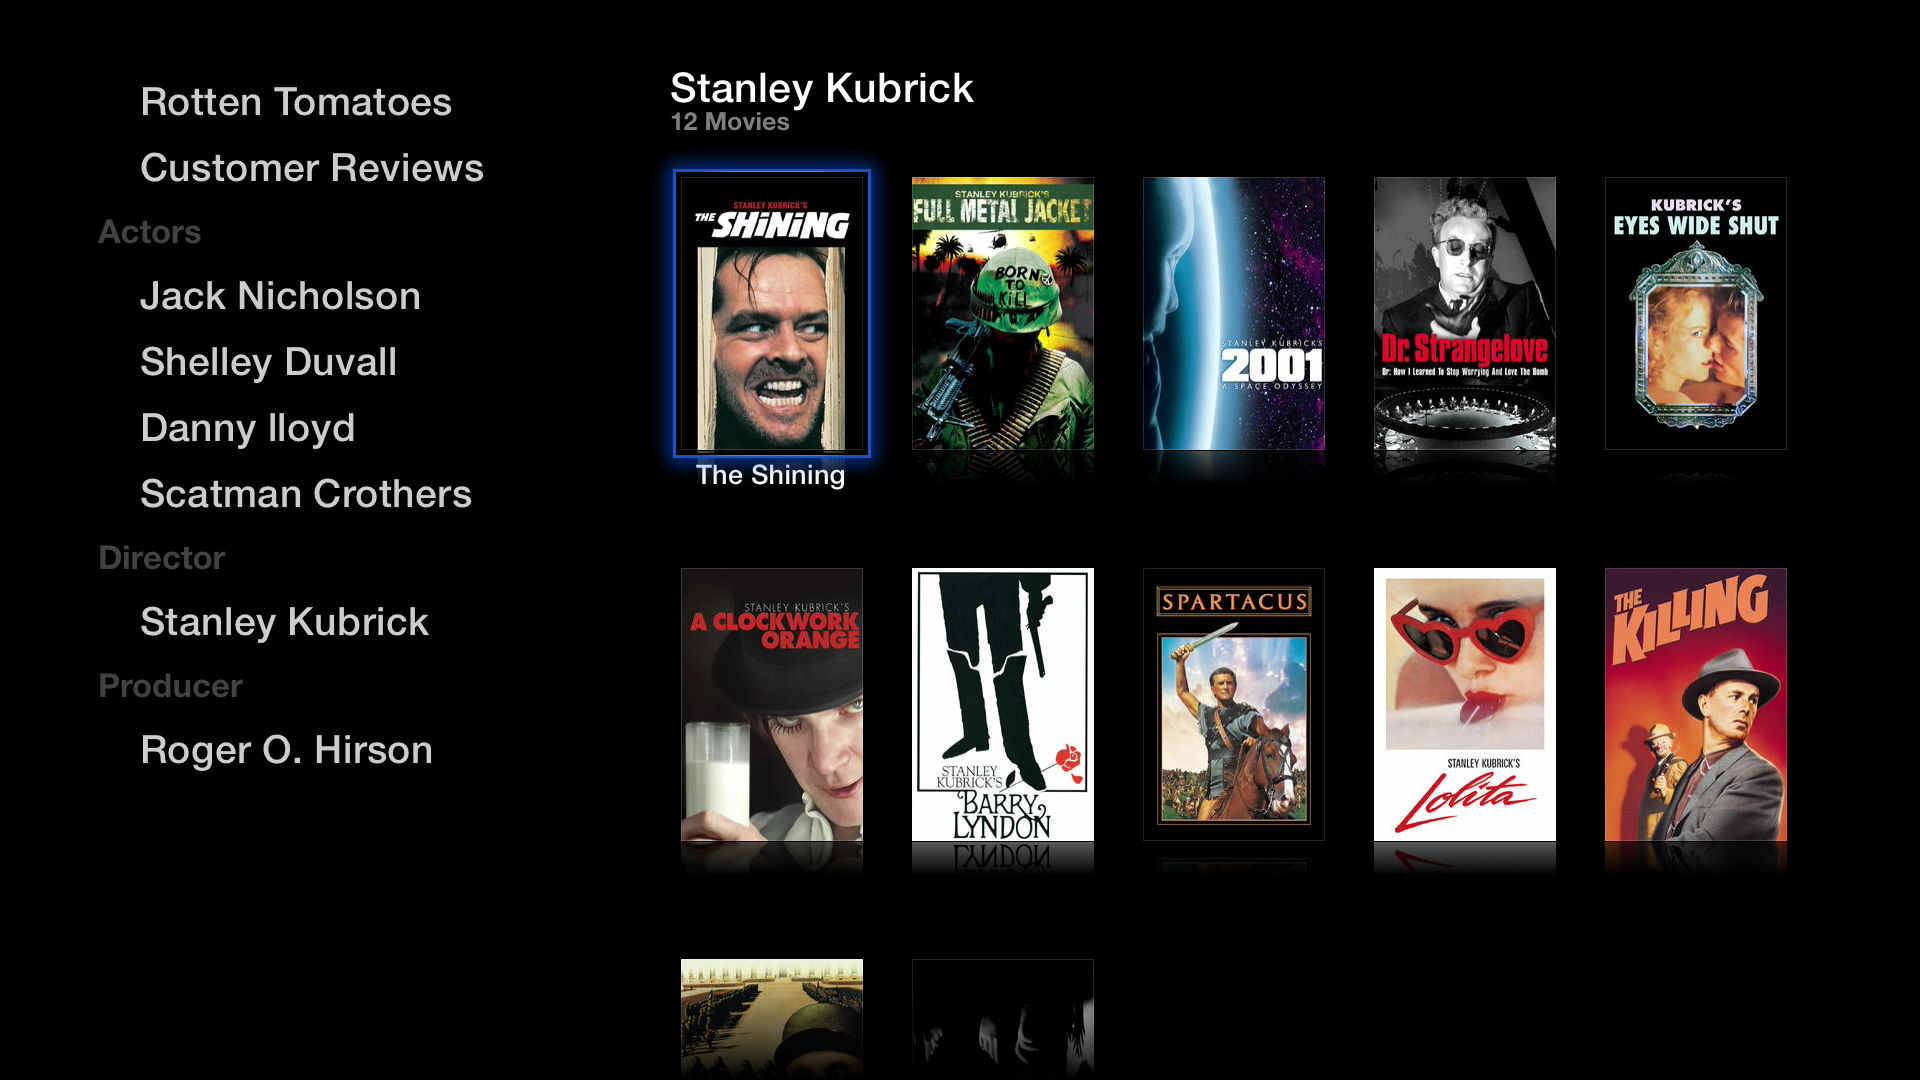 Figure 8: Select More in a movie's listing to see reviews and find more titles by the principles.